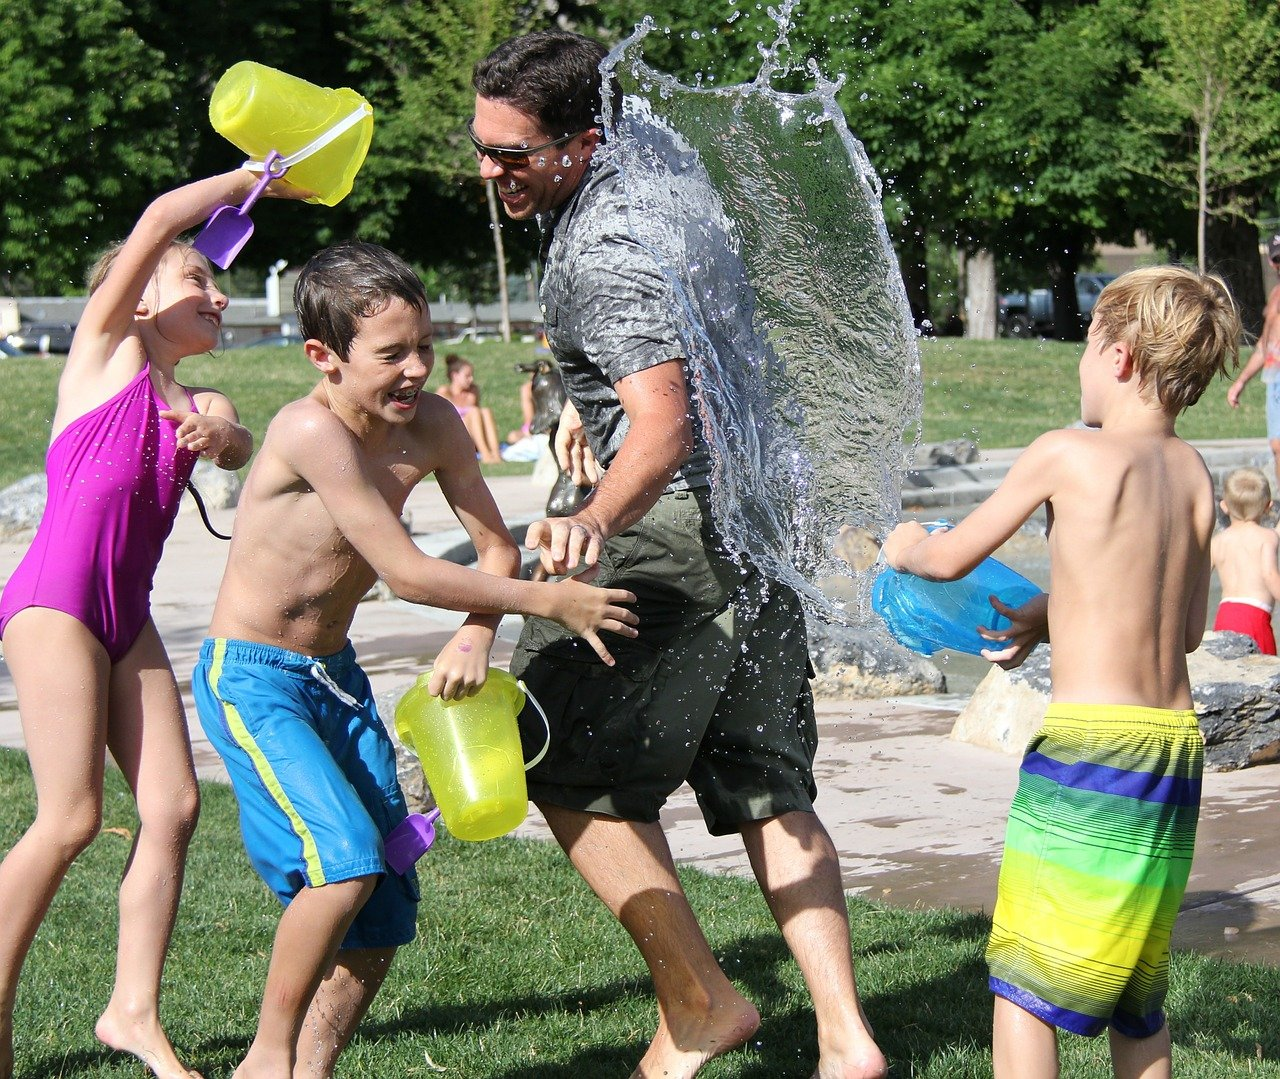 water-fight-442257_1280.jpg